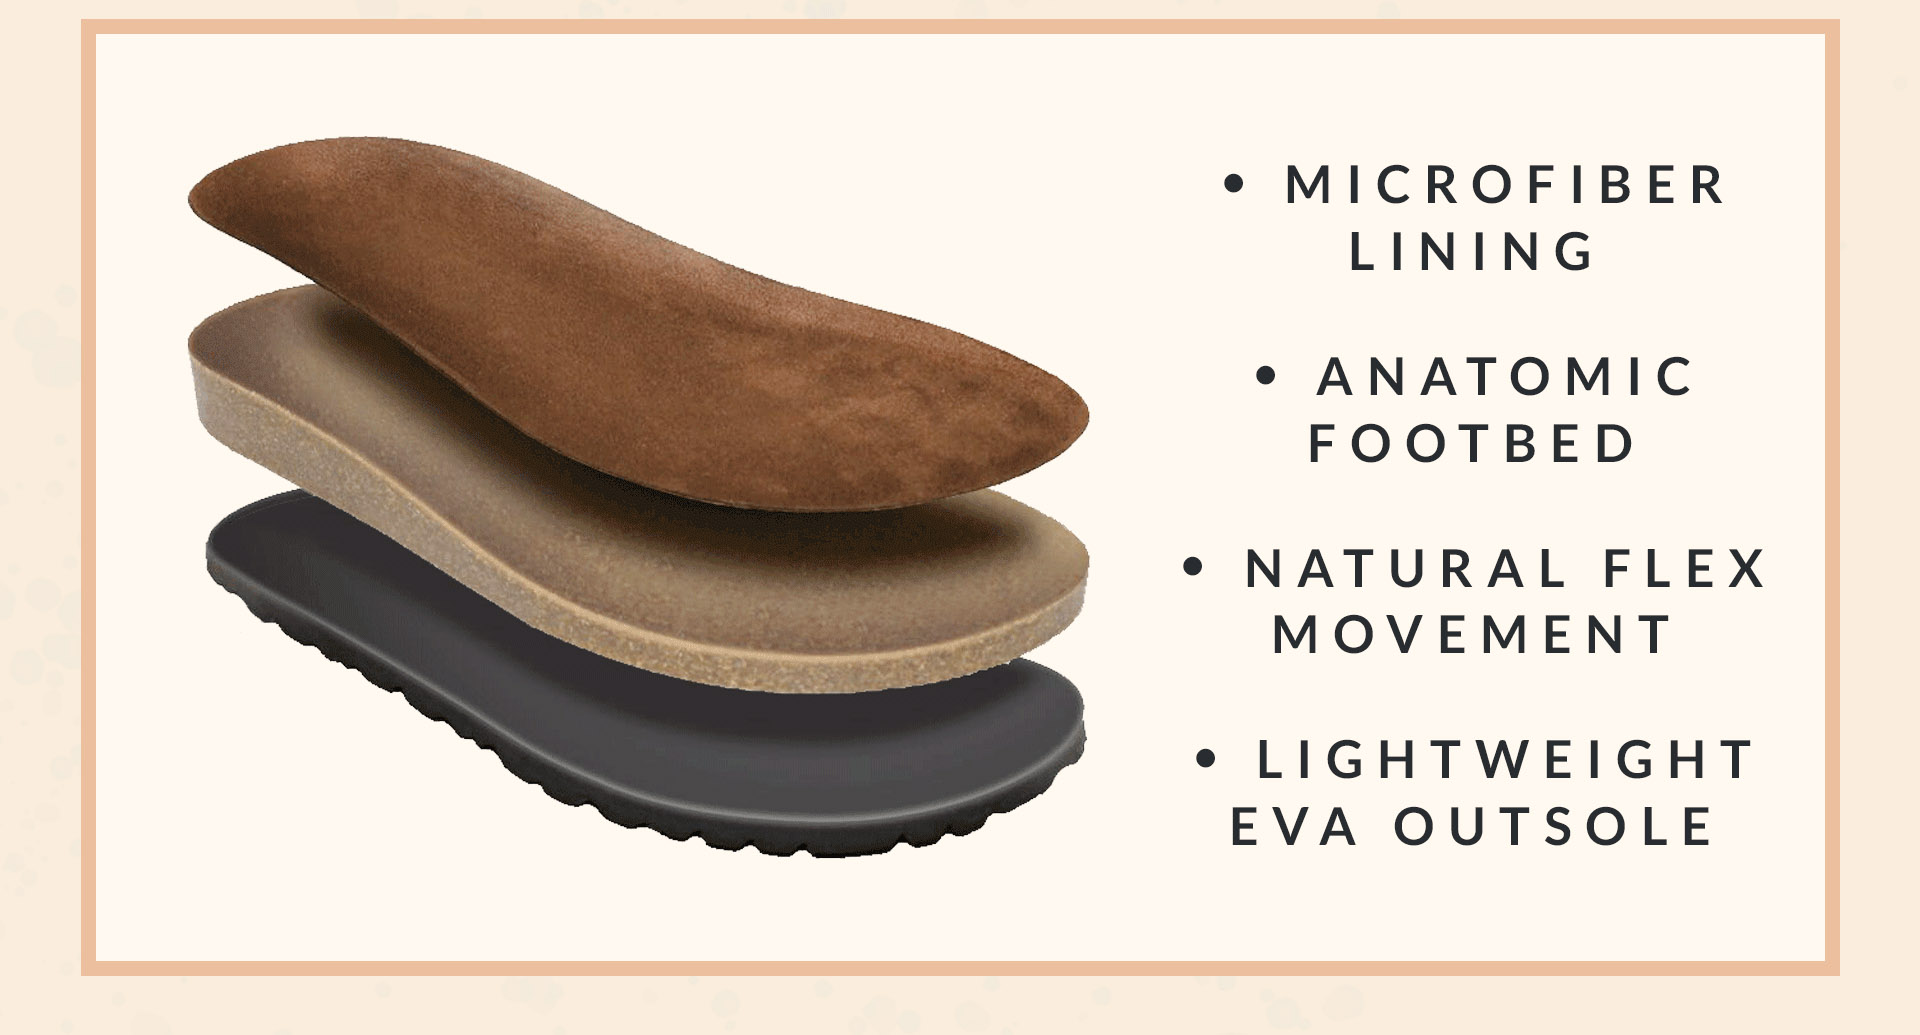  microfiber lining  anatomic footbed  natural flex movement  lightweight EVA outsole